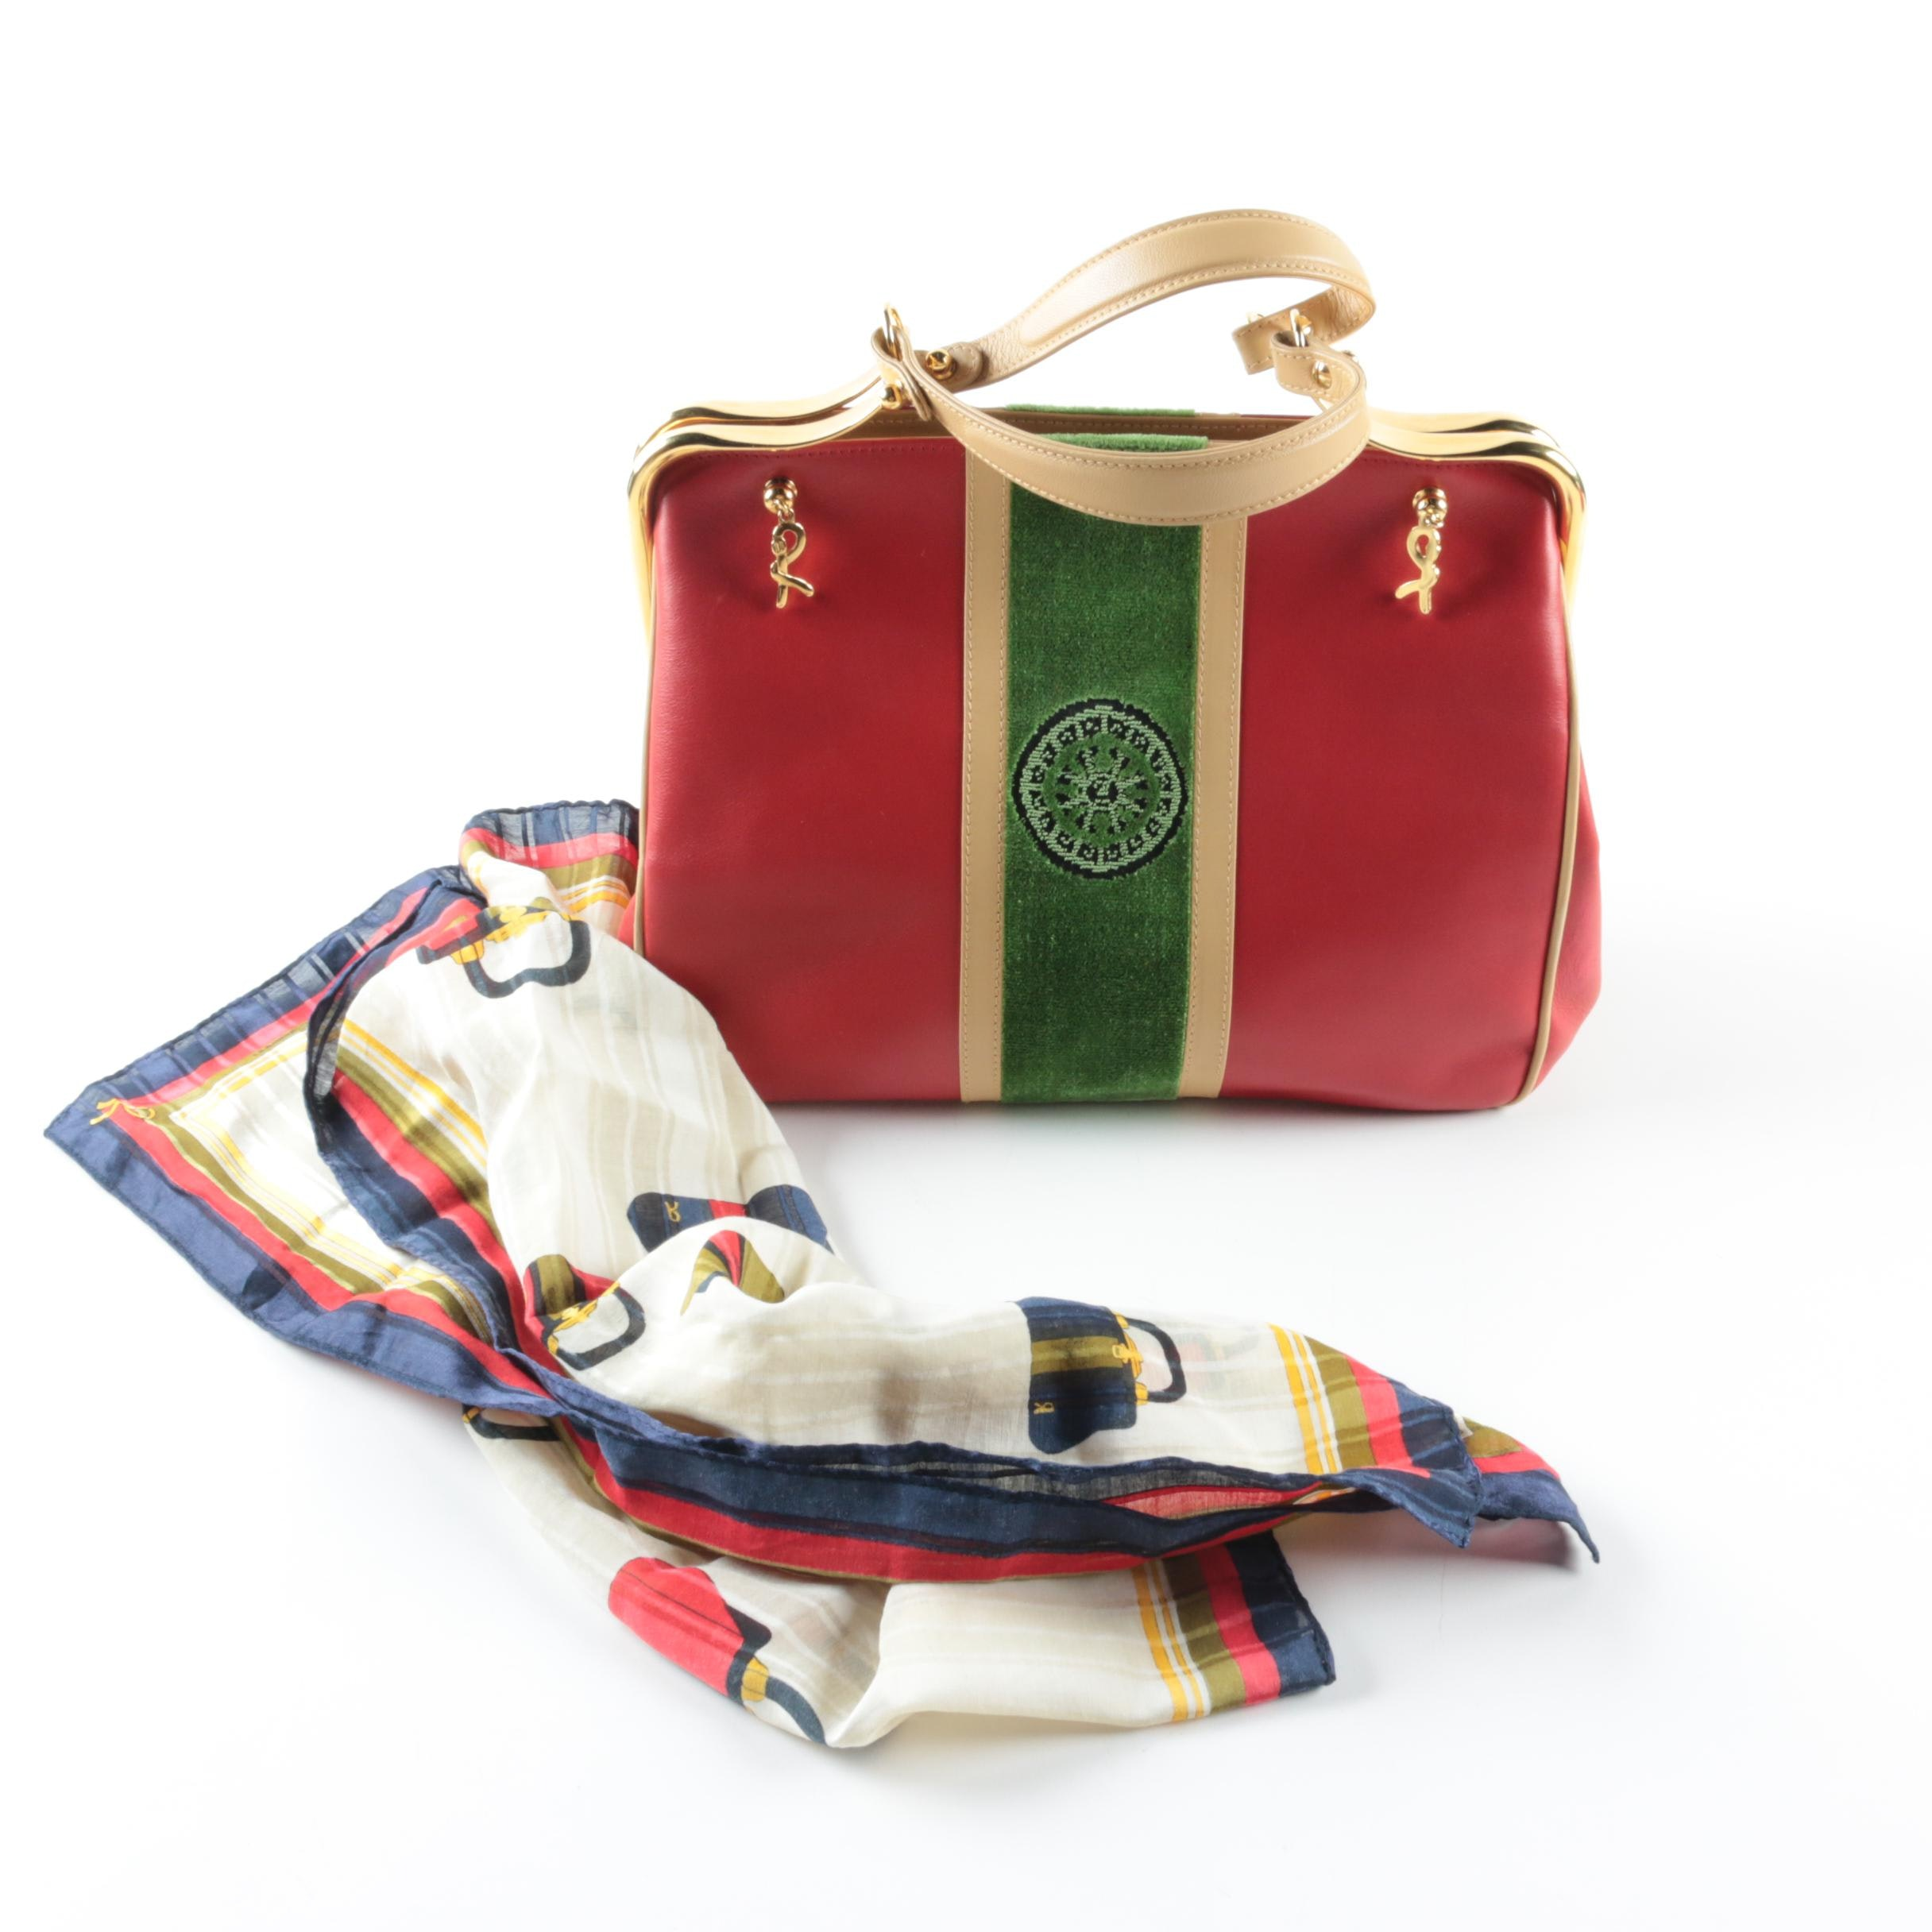 Vintage Roberta di Camerino Leather Frame Bag and Silk Scarf